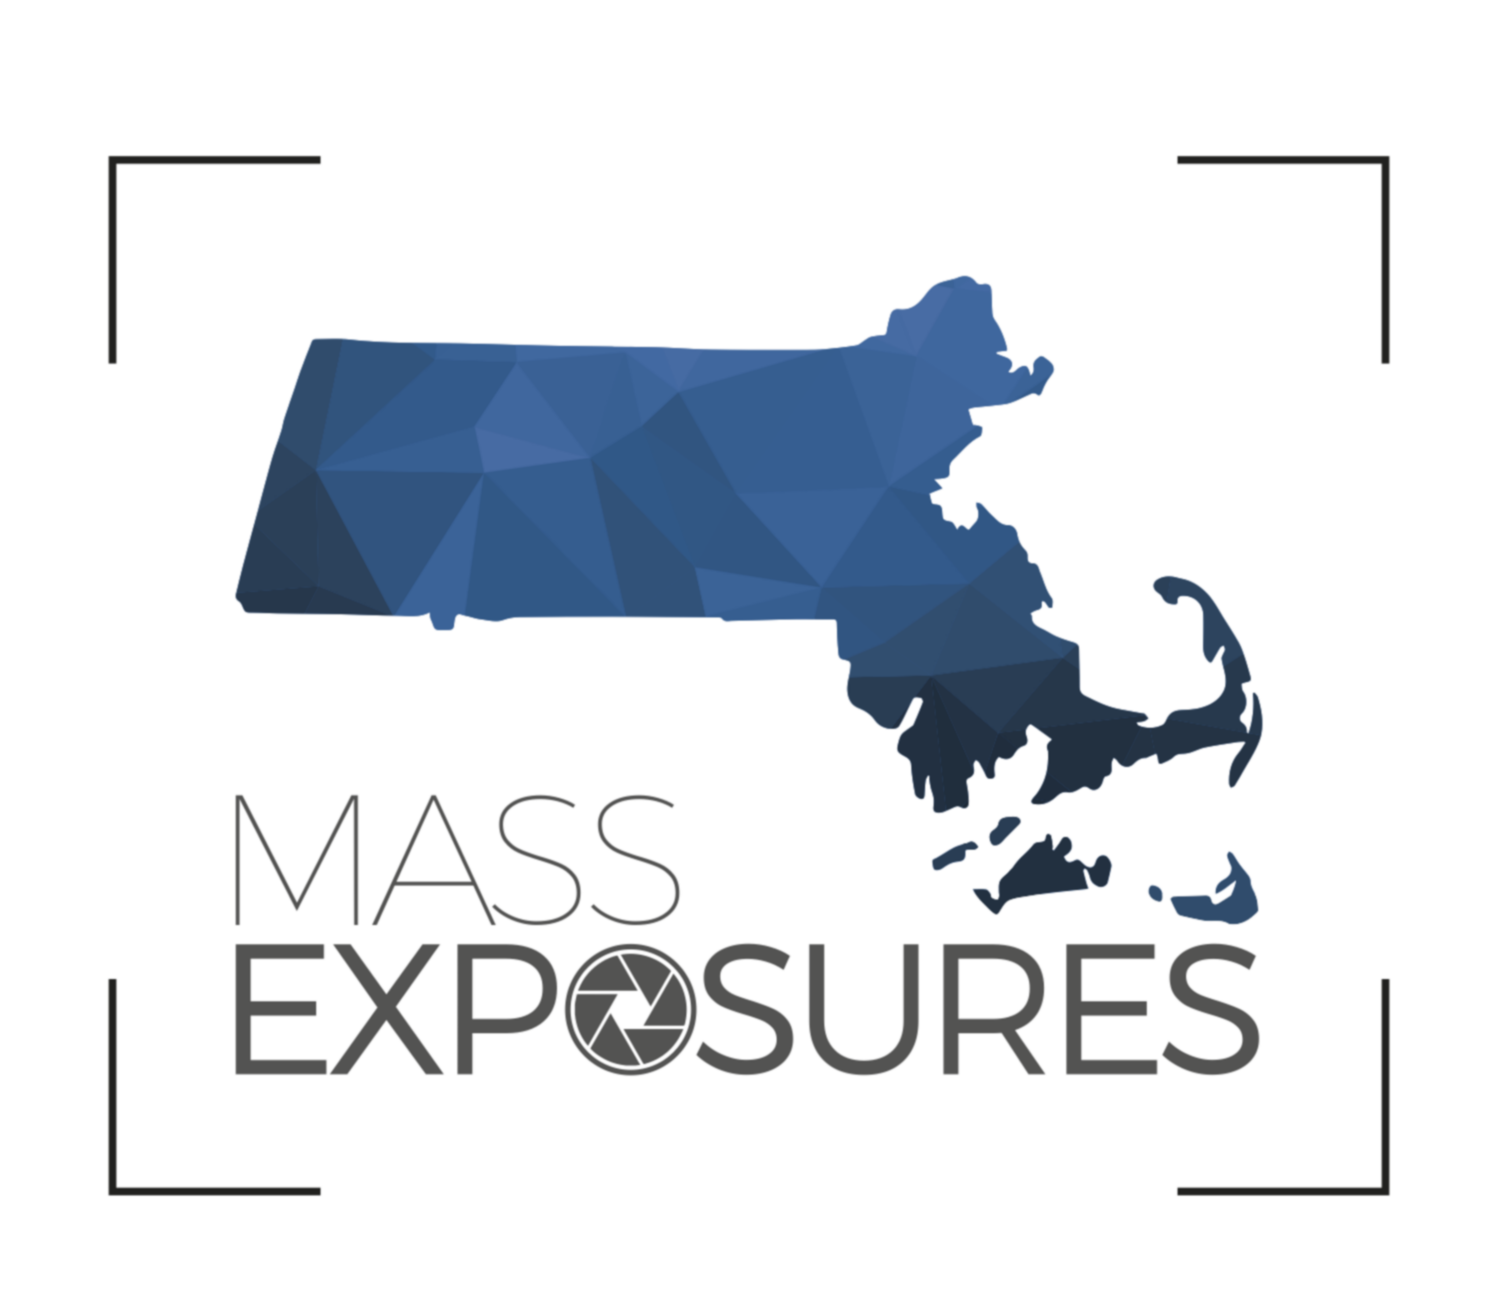 Mass Exposures